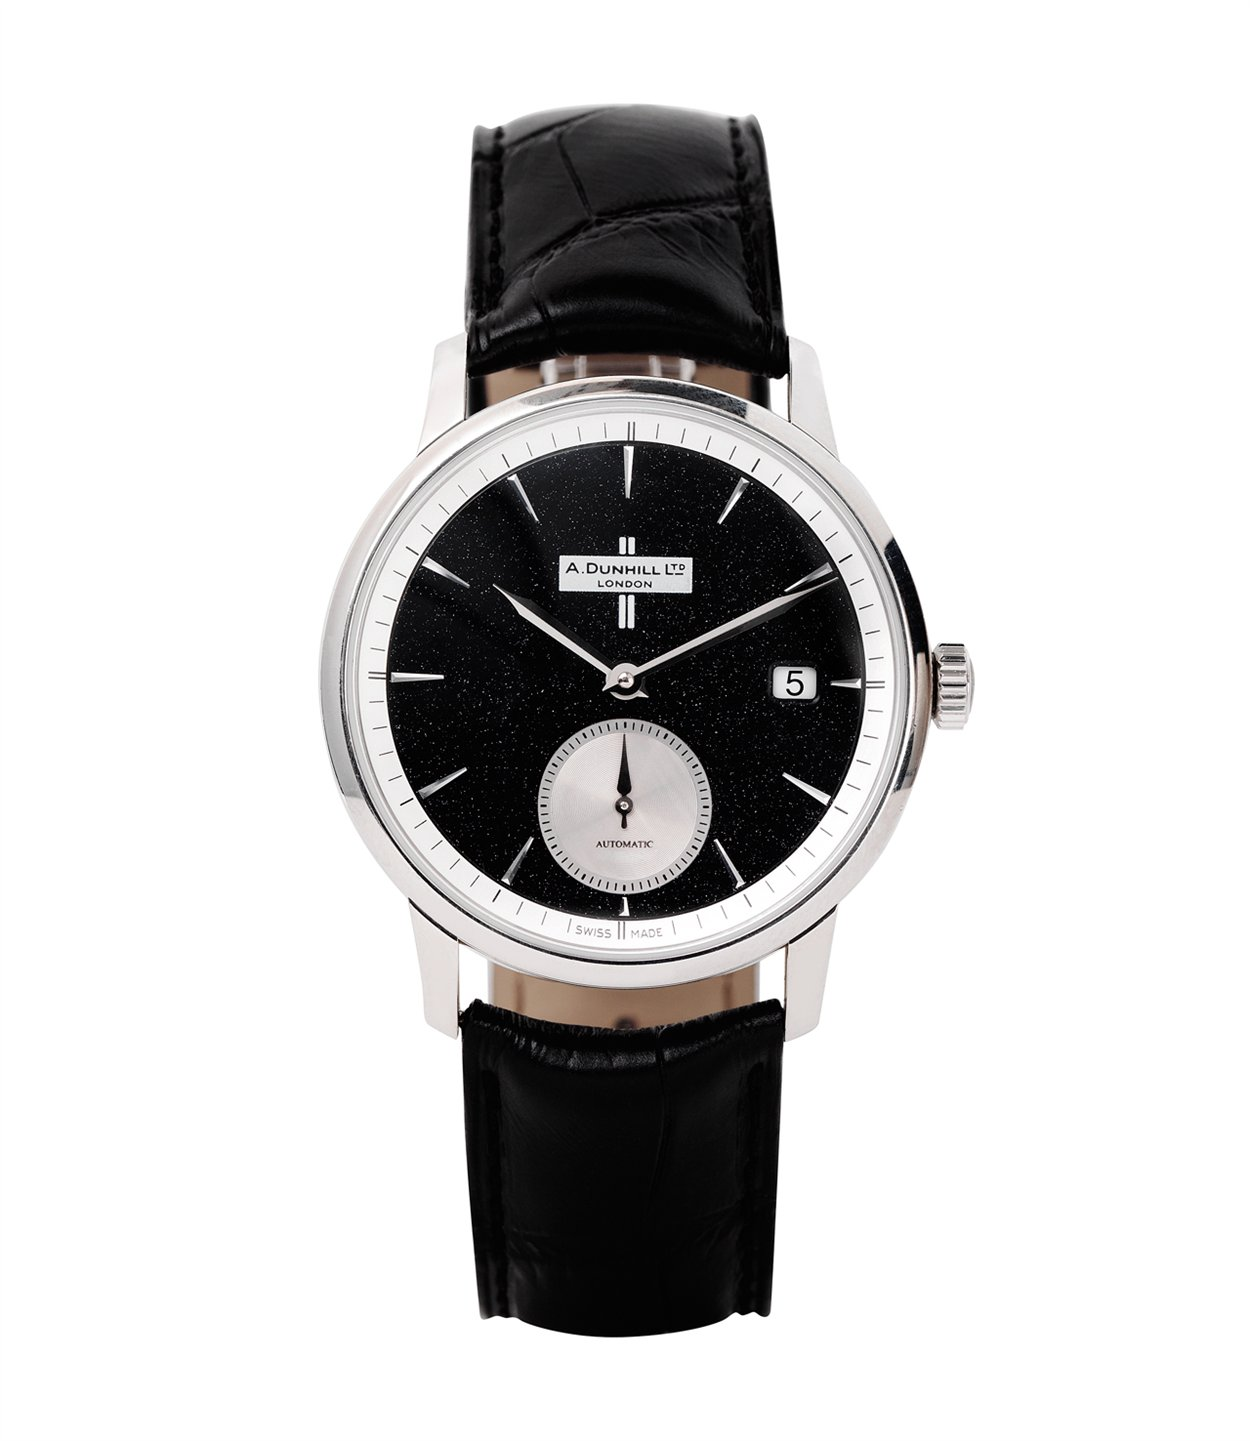 Dunhill Classic watch Crushed Black Diamond in Dial